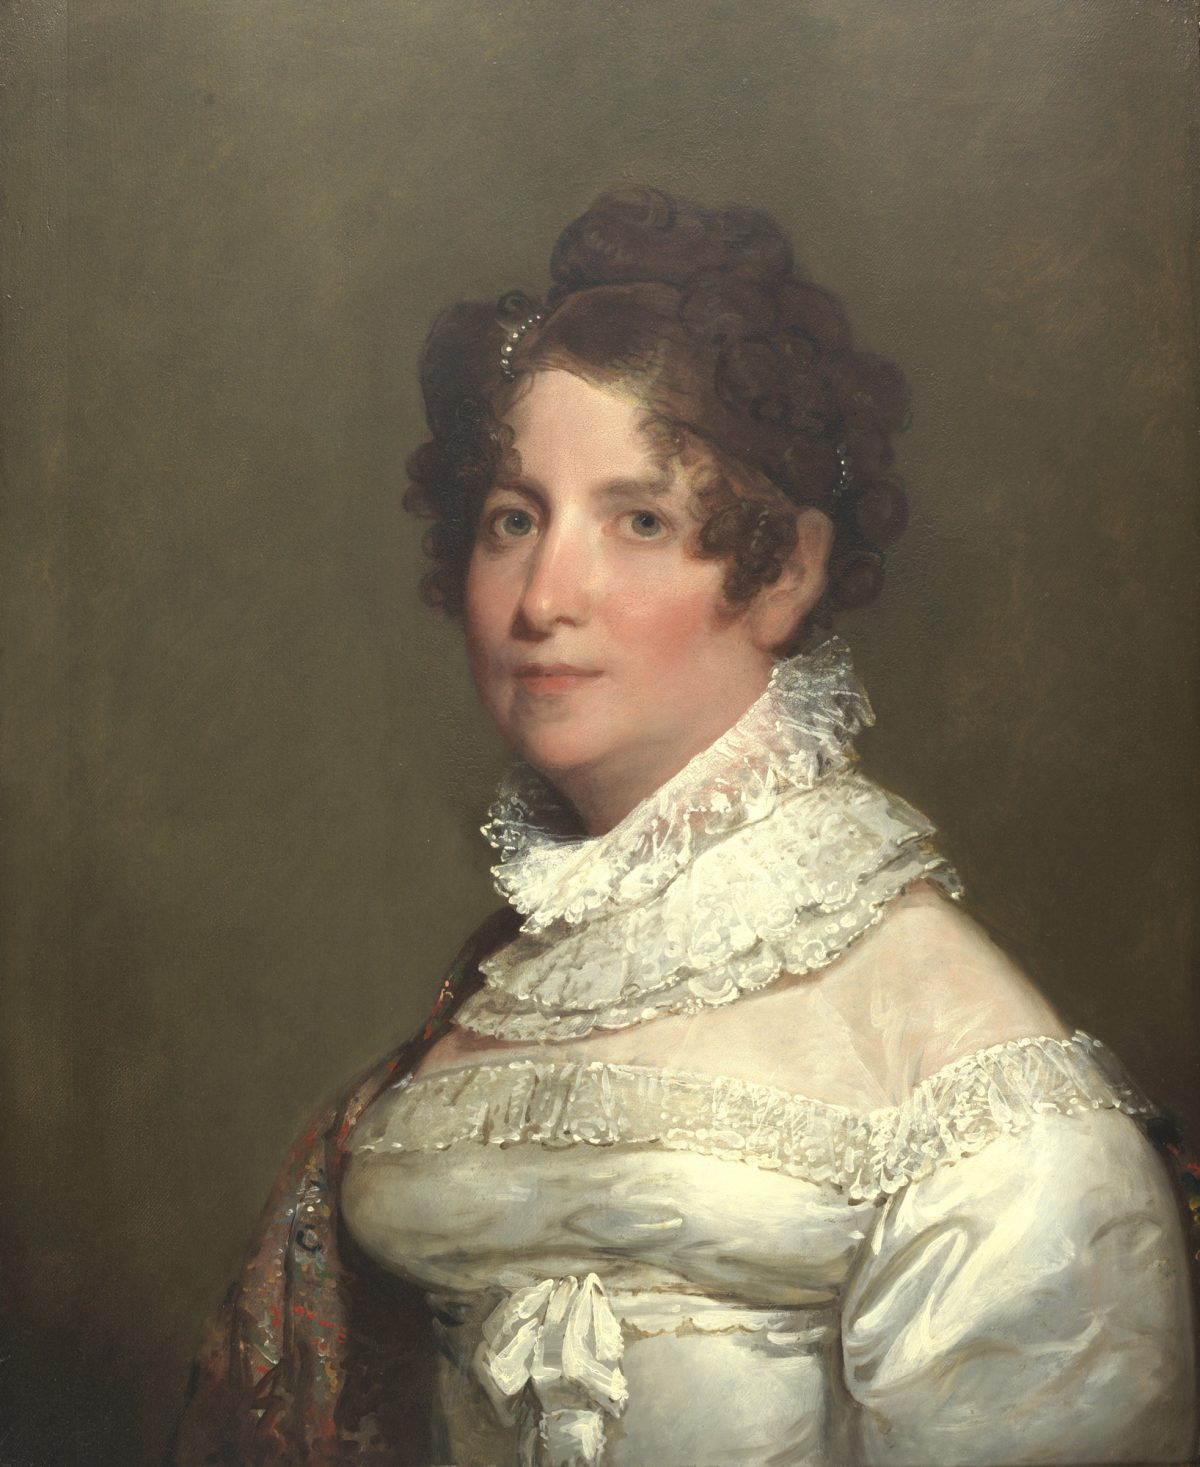 Gilbert Stuart portrait of Clementina Beach